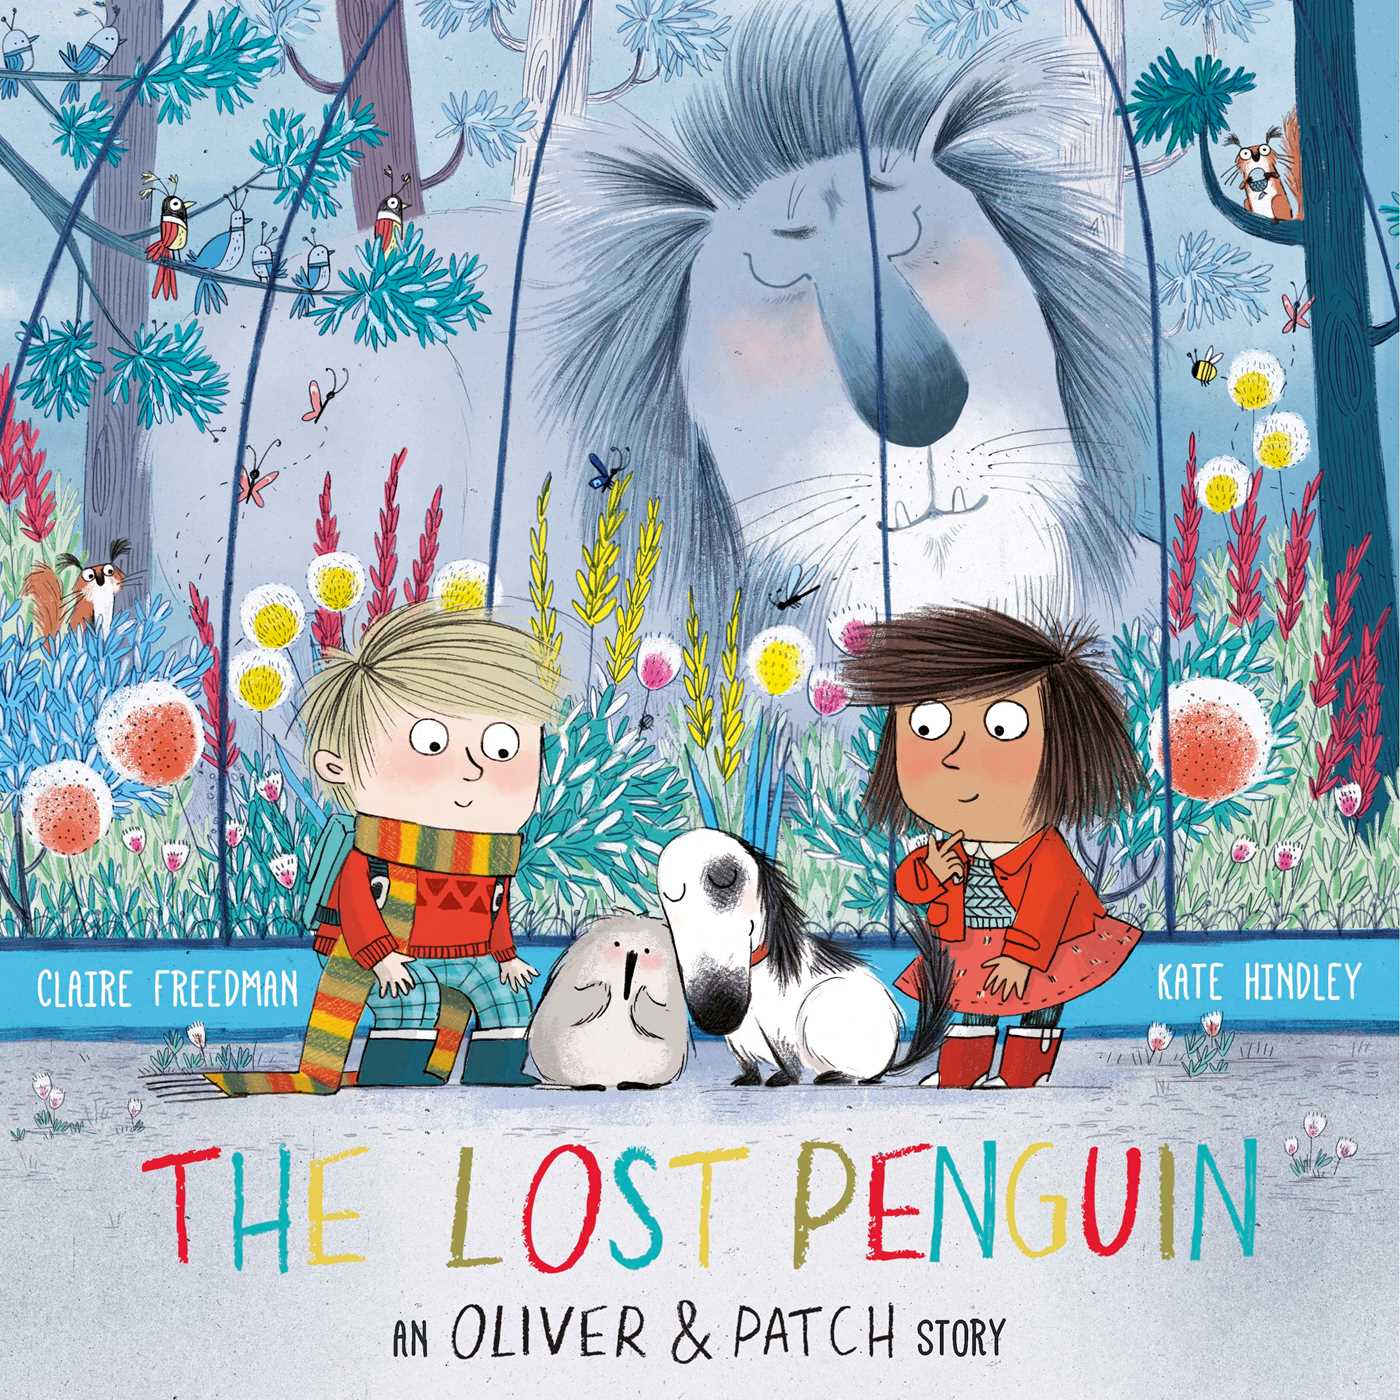 The lost penguin 9781471117336 hr